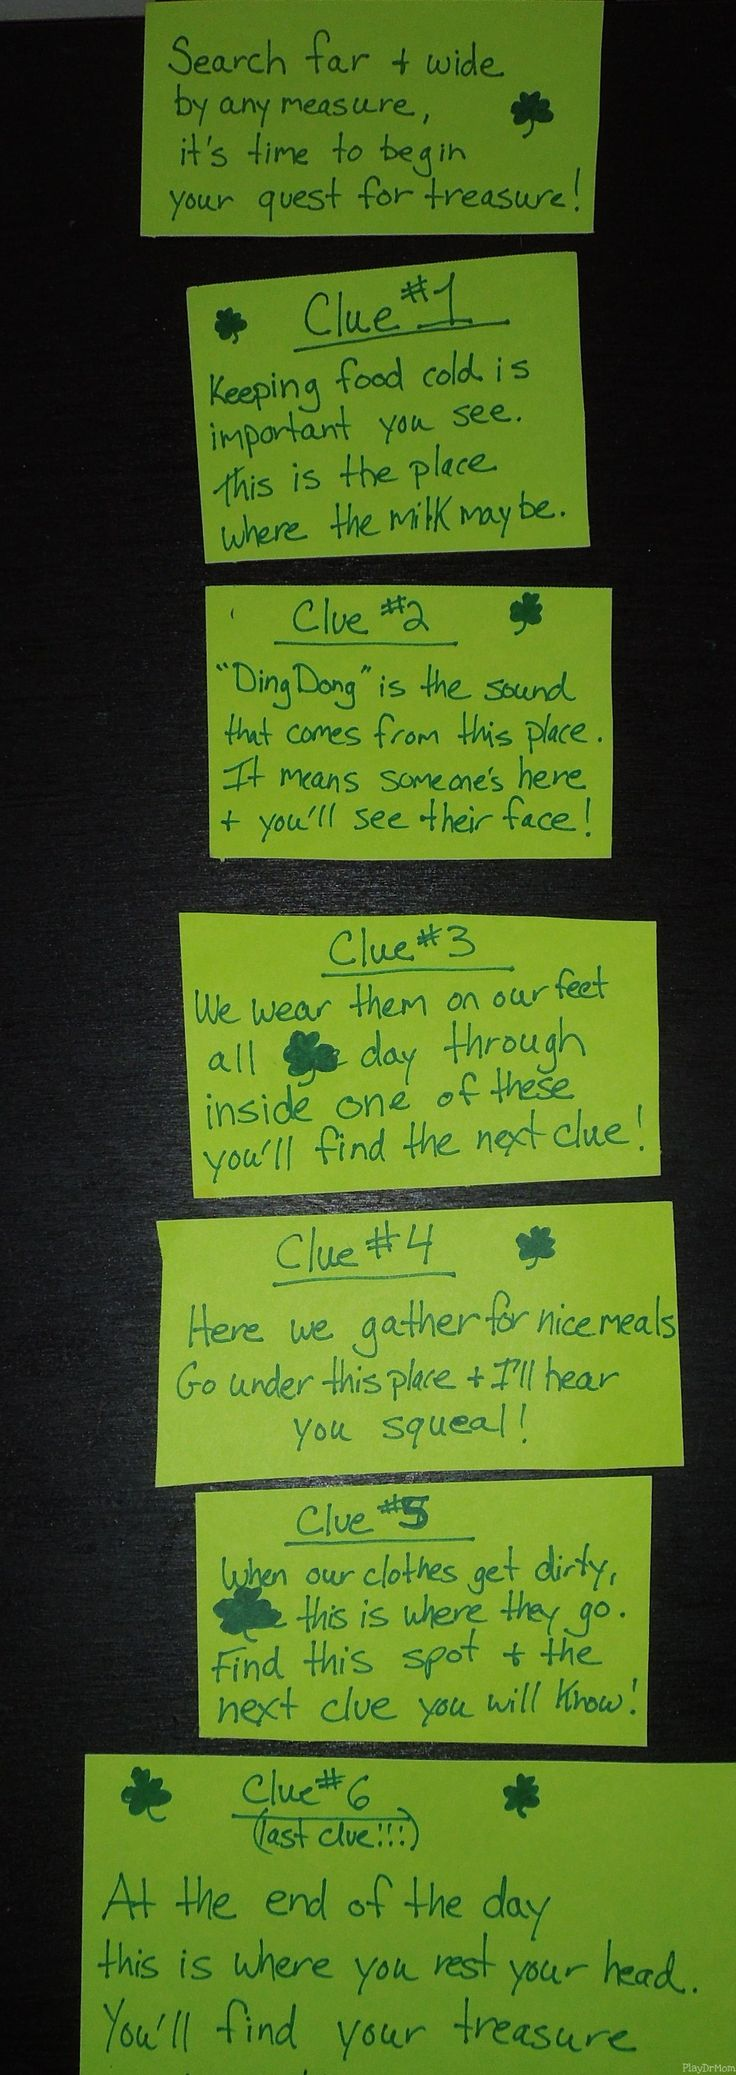 PlayDrMom shares some St. Patrick's Day Fun ... great activities to do with your kids!